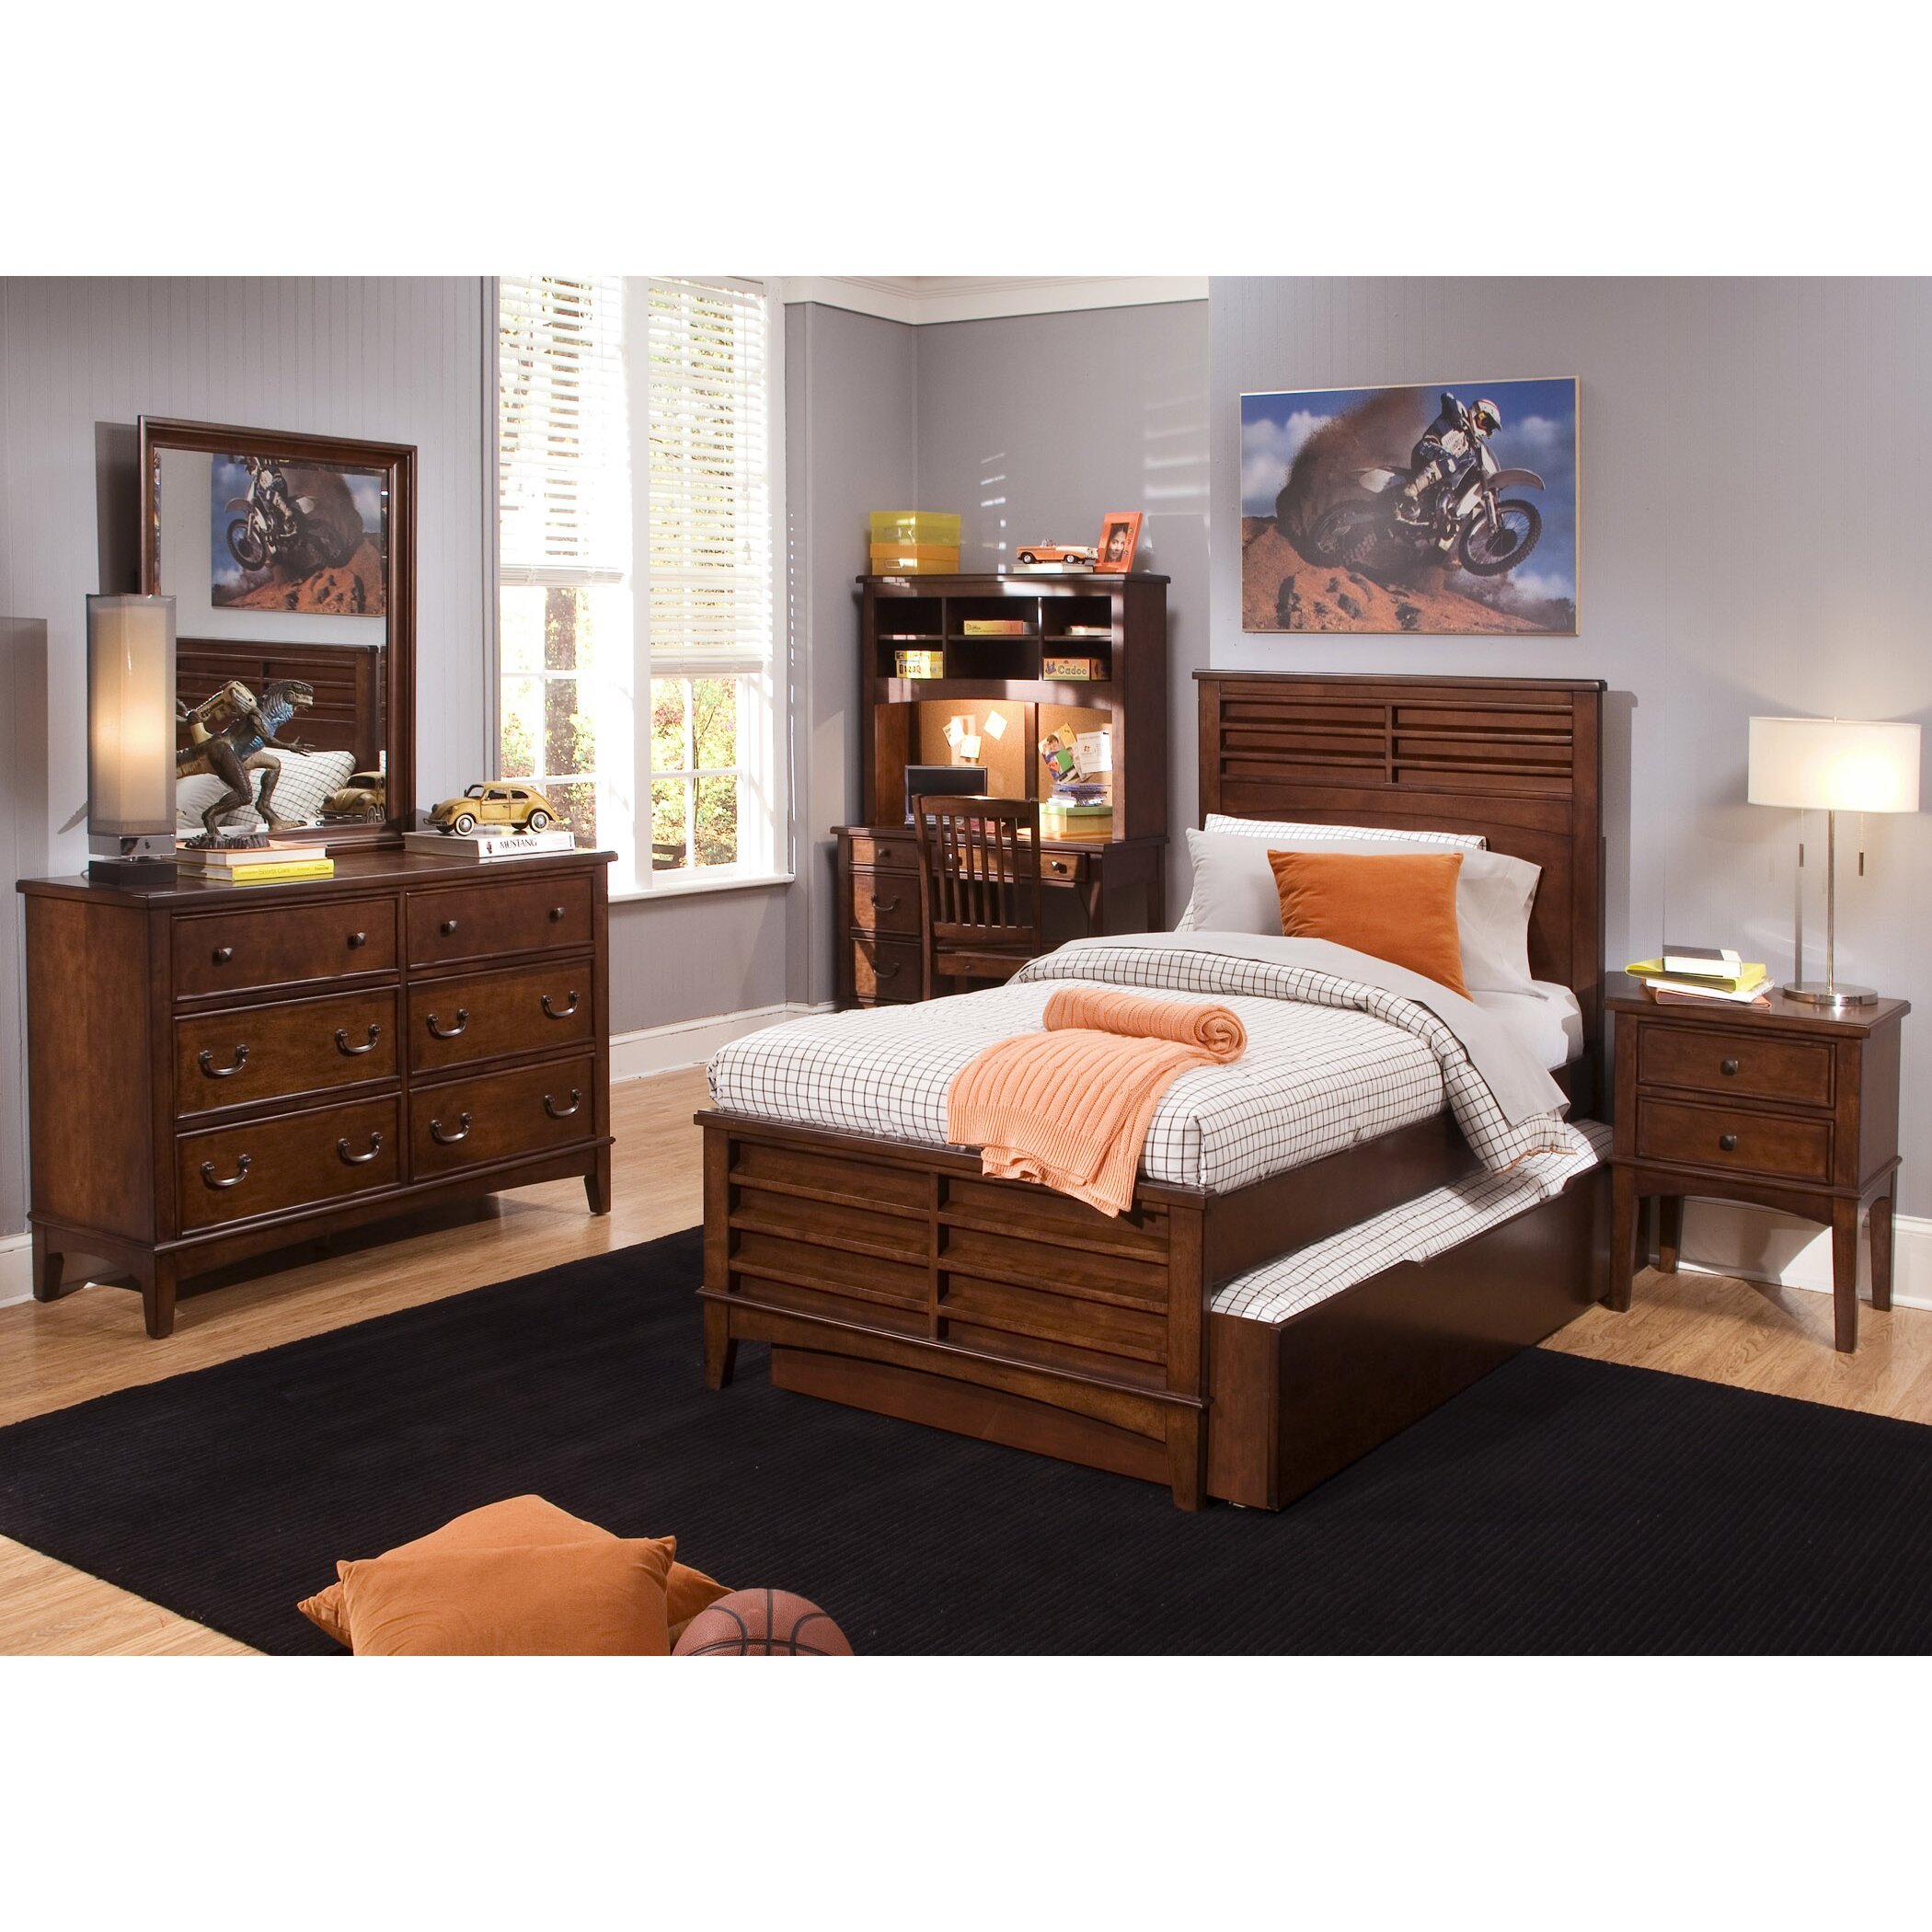 39 Bedroom Furniture Kids 39 Bedroom Sets Liberty Furniture SKU LIF